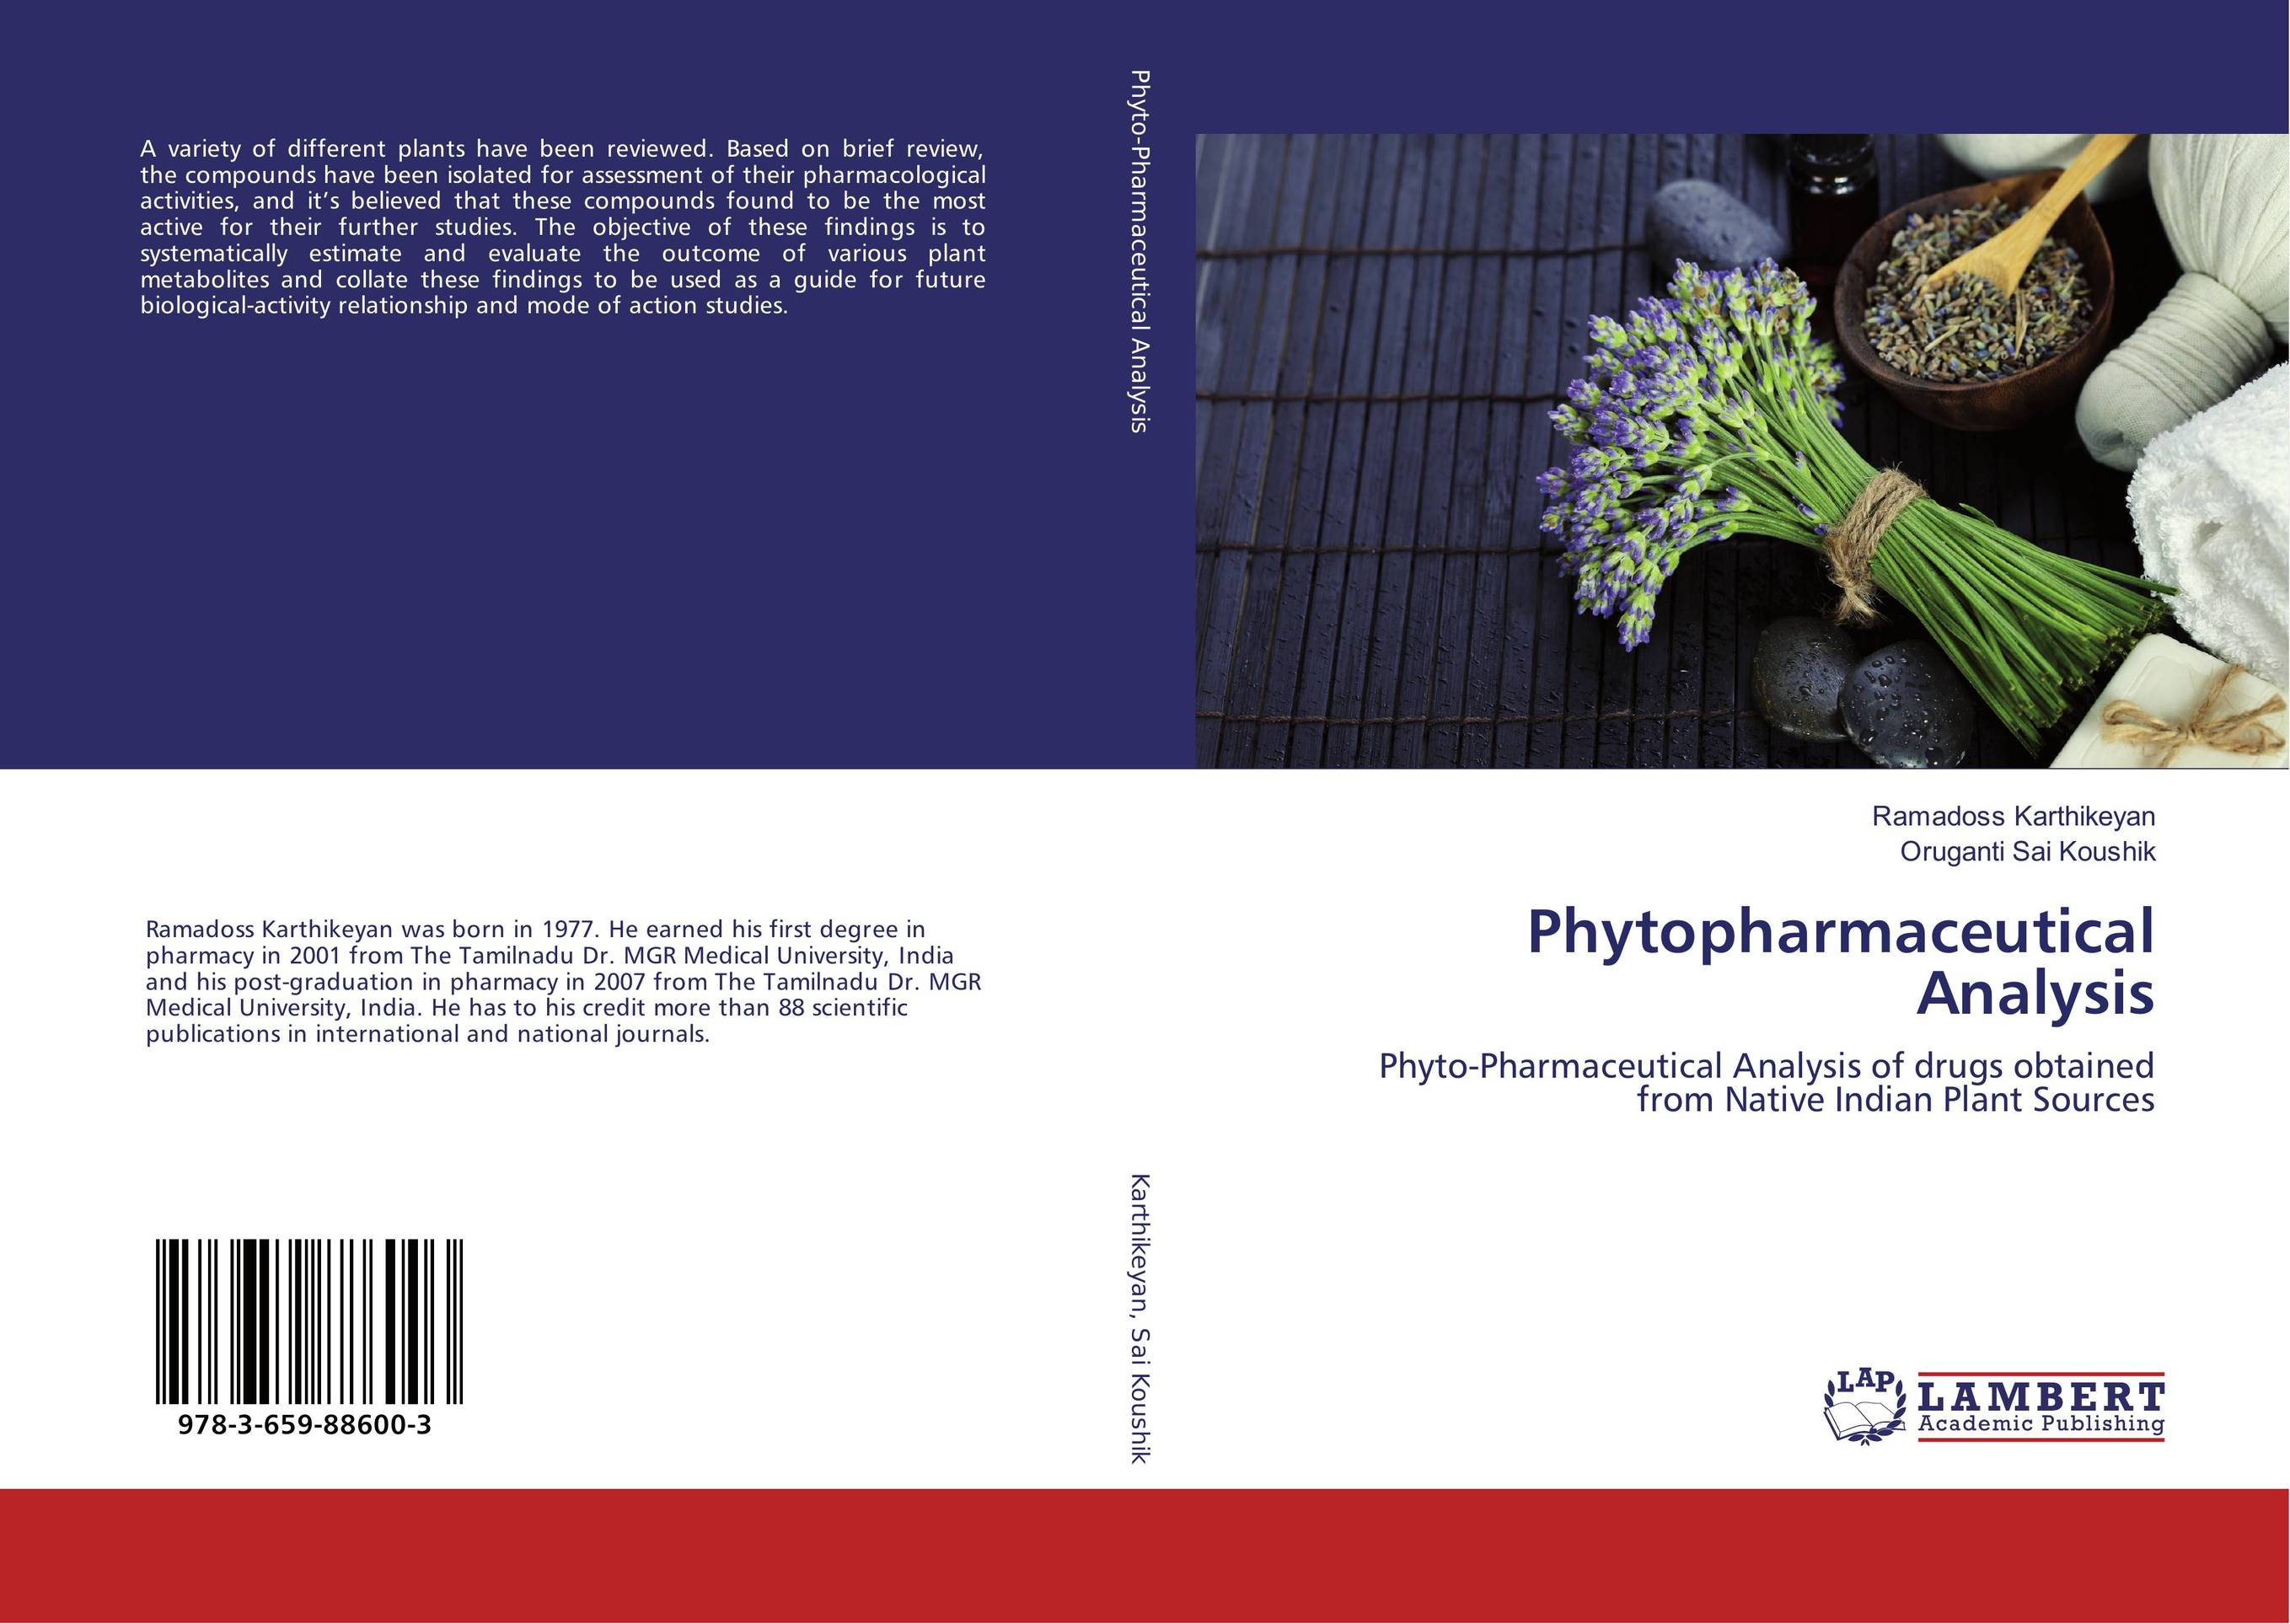 Phytopharmaceutical Analysis